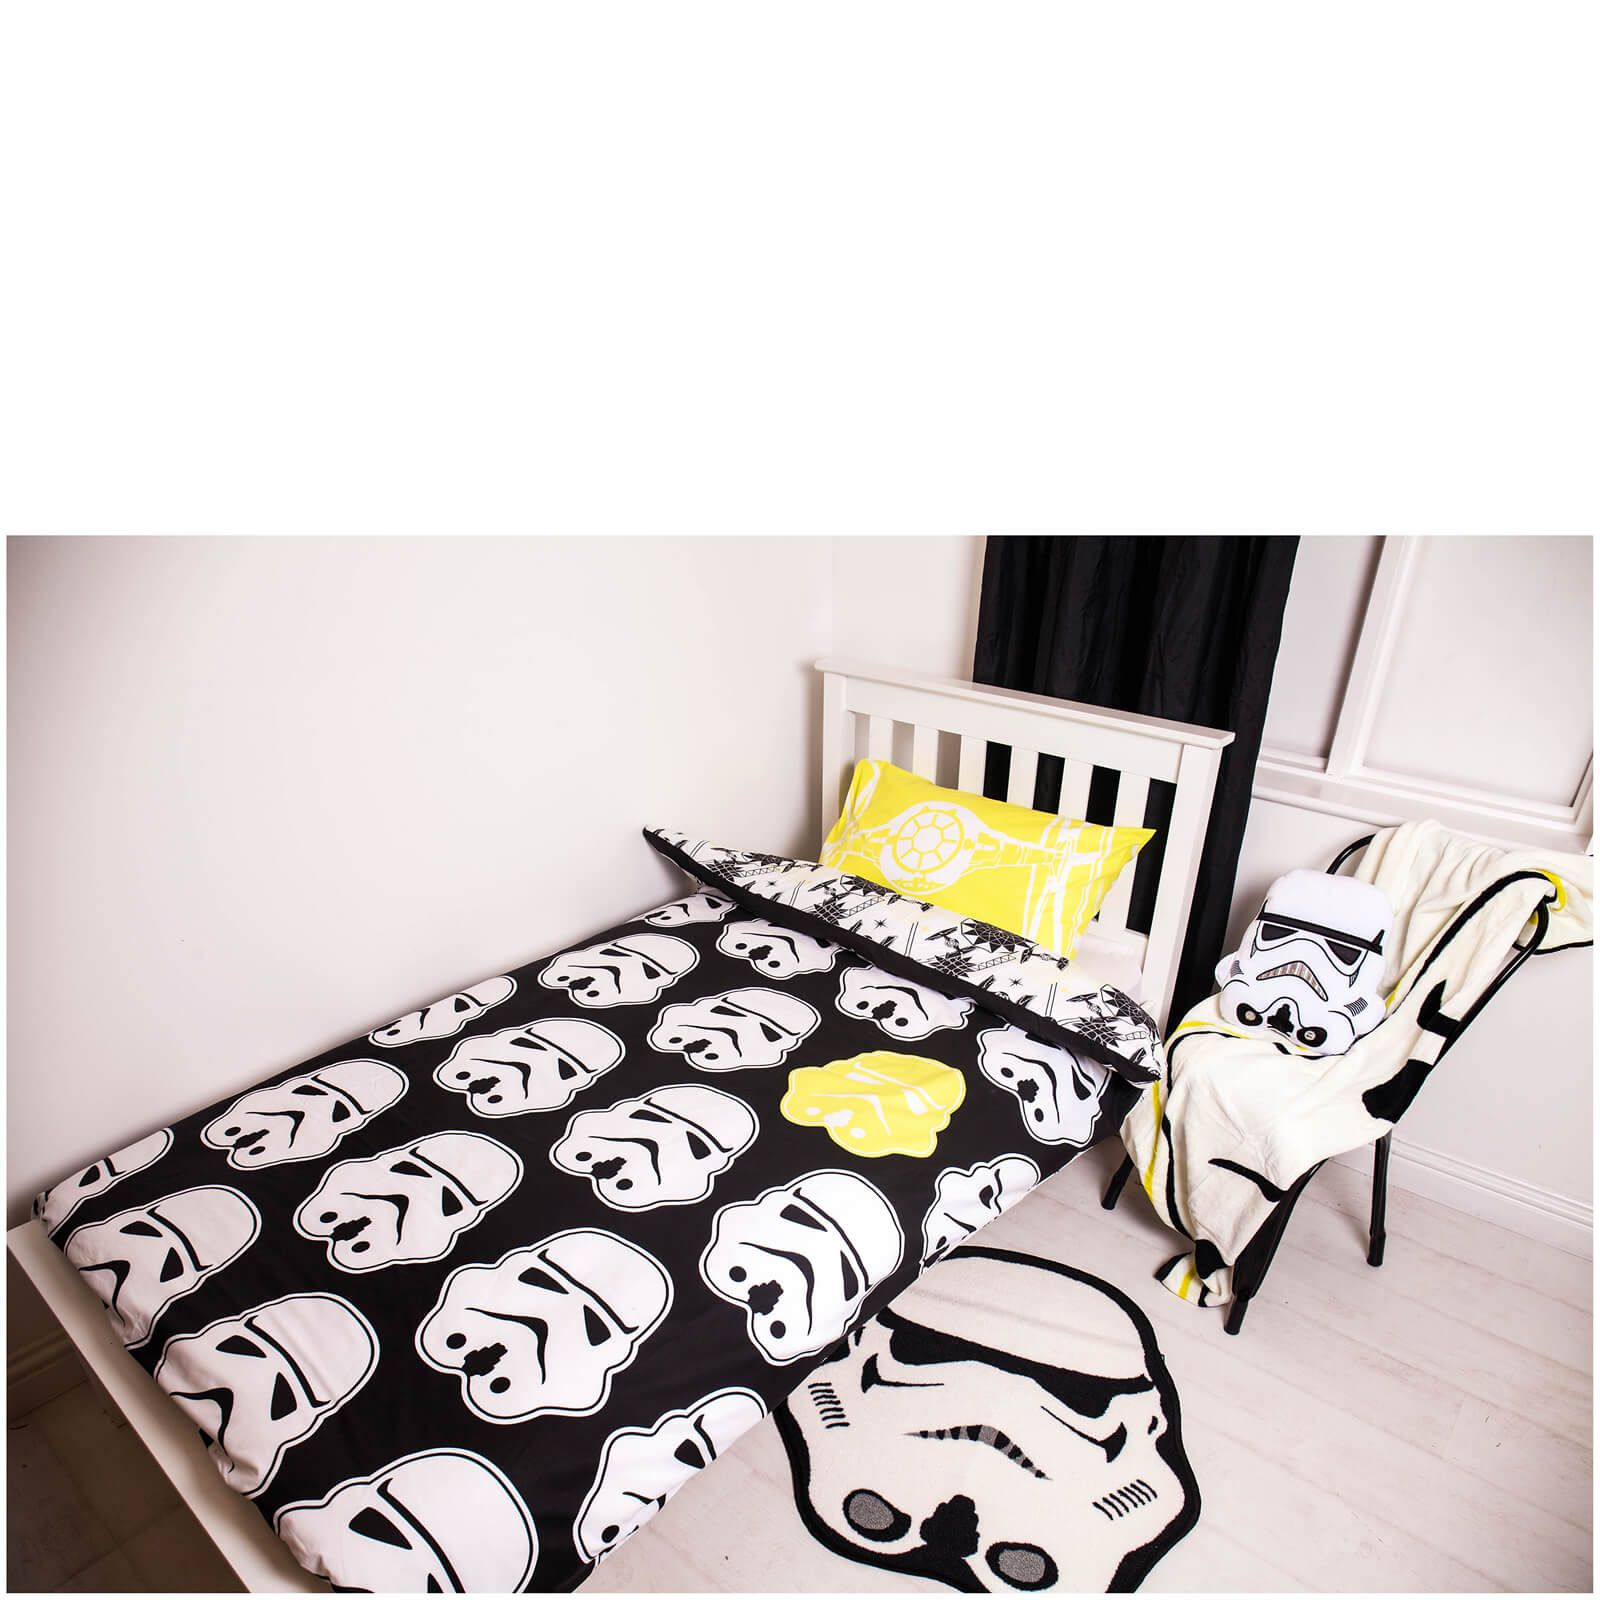 Stormtrooper Bed Sheets Star Wars Classic Stormtrooper Bedroom Bundle Single